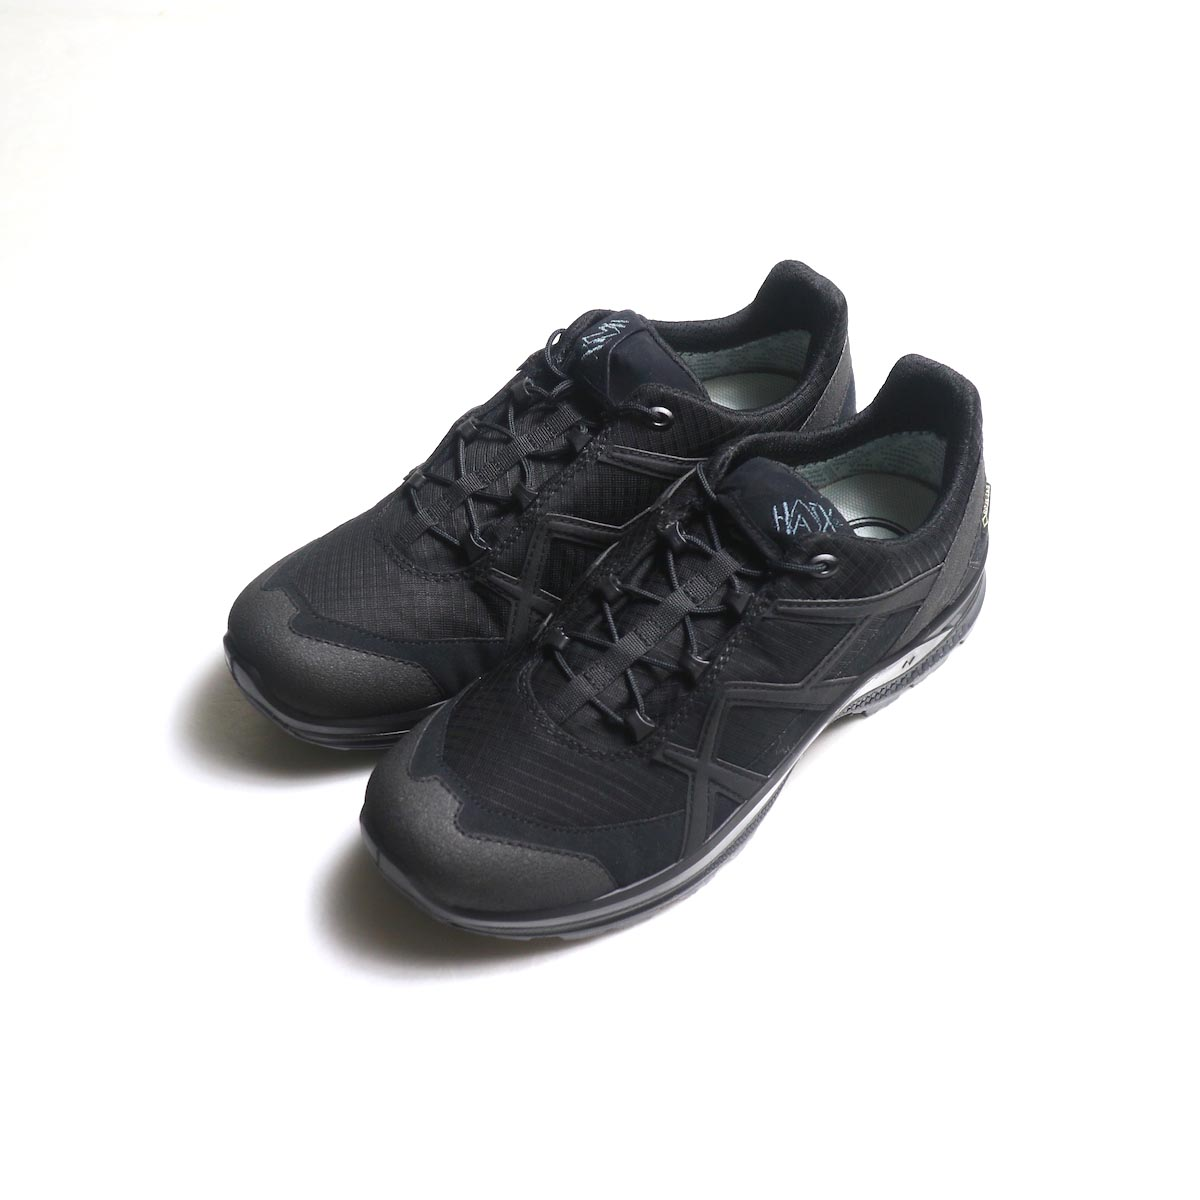 HAIX / BLACK EAGLE - ATHLETIC 2.1 GTX LOW (Black)全体像